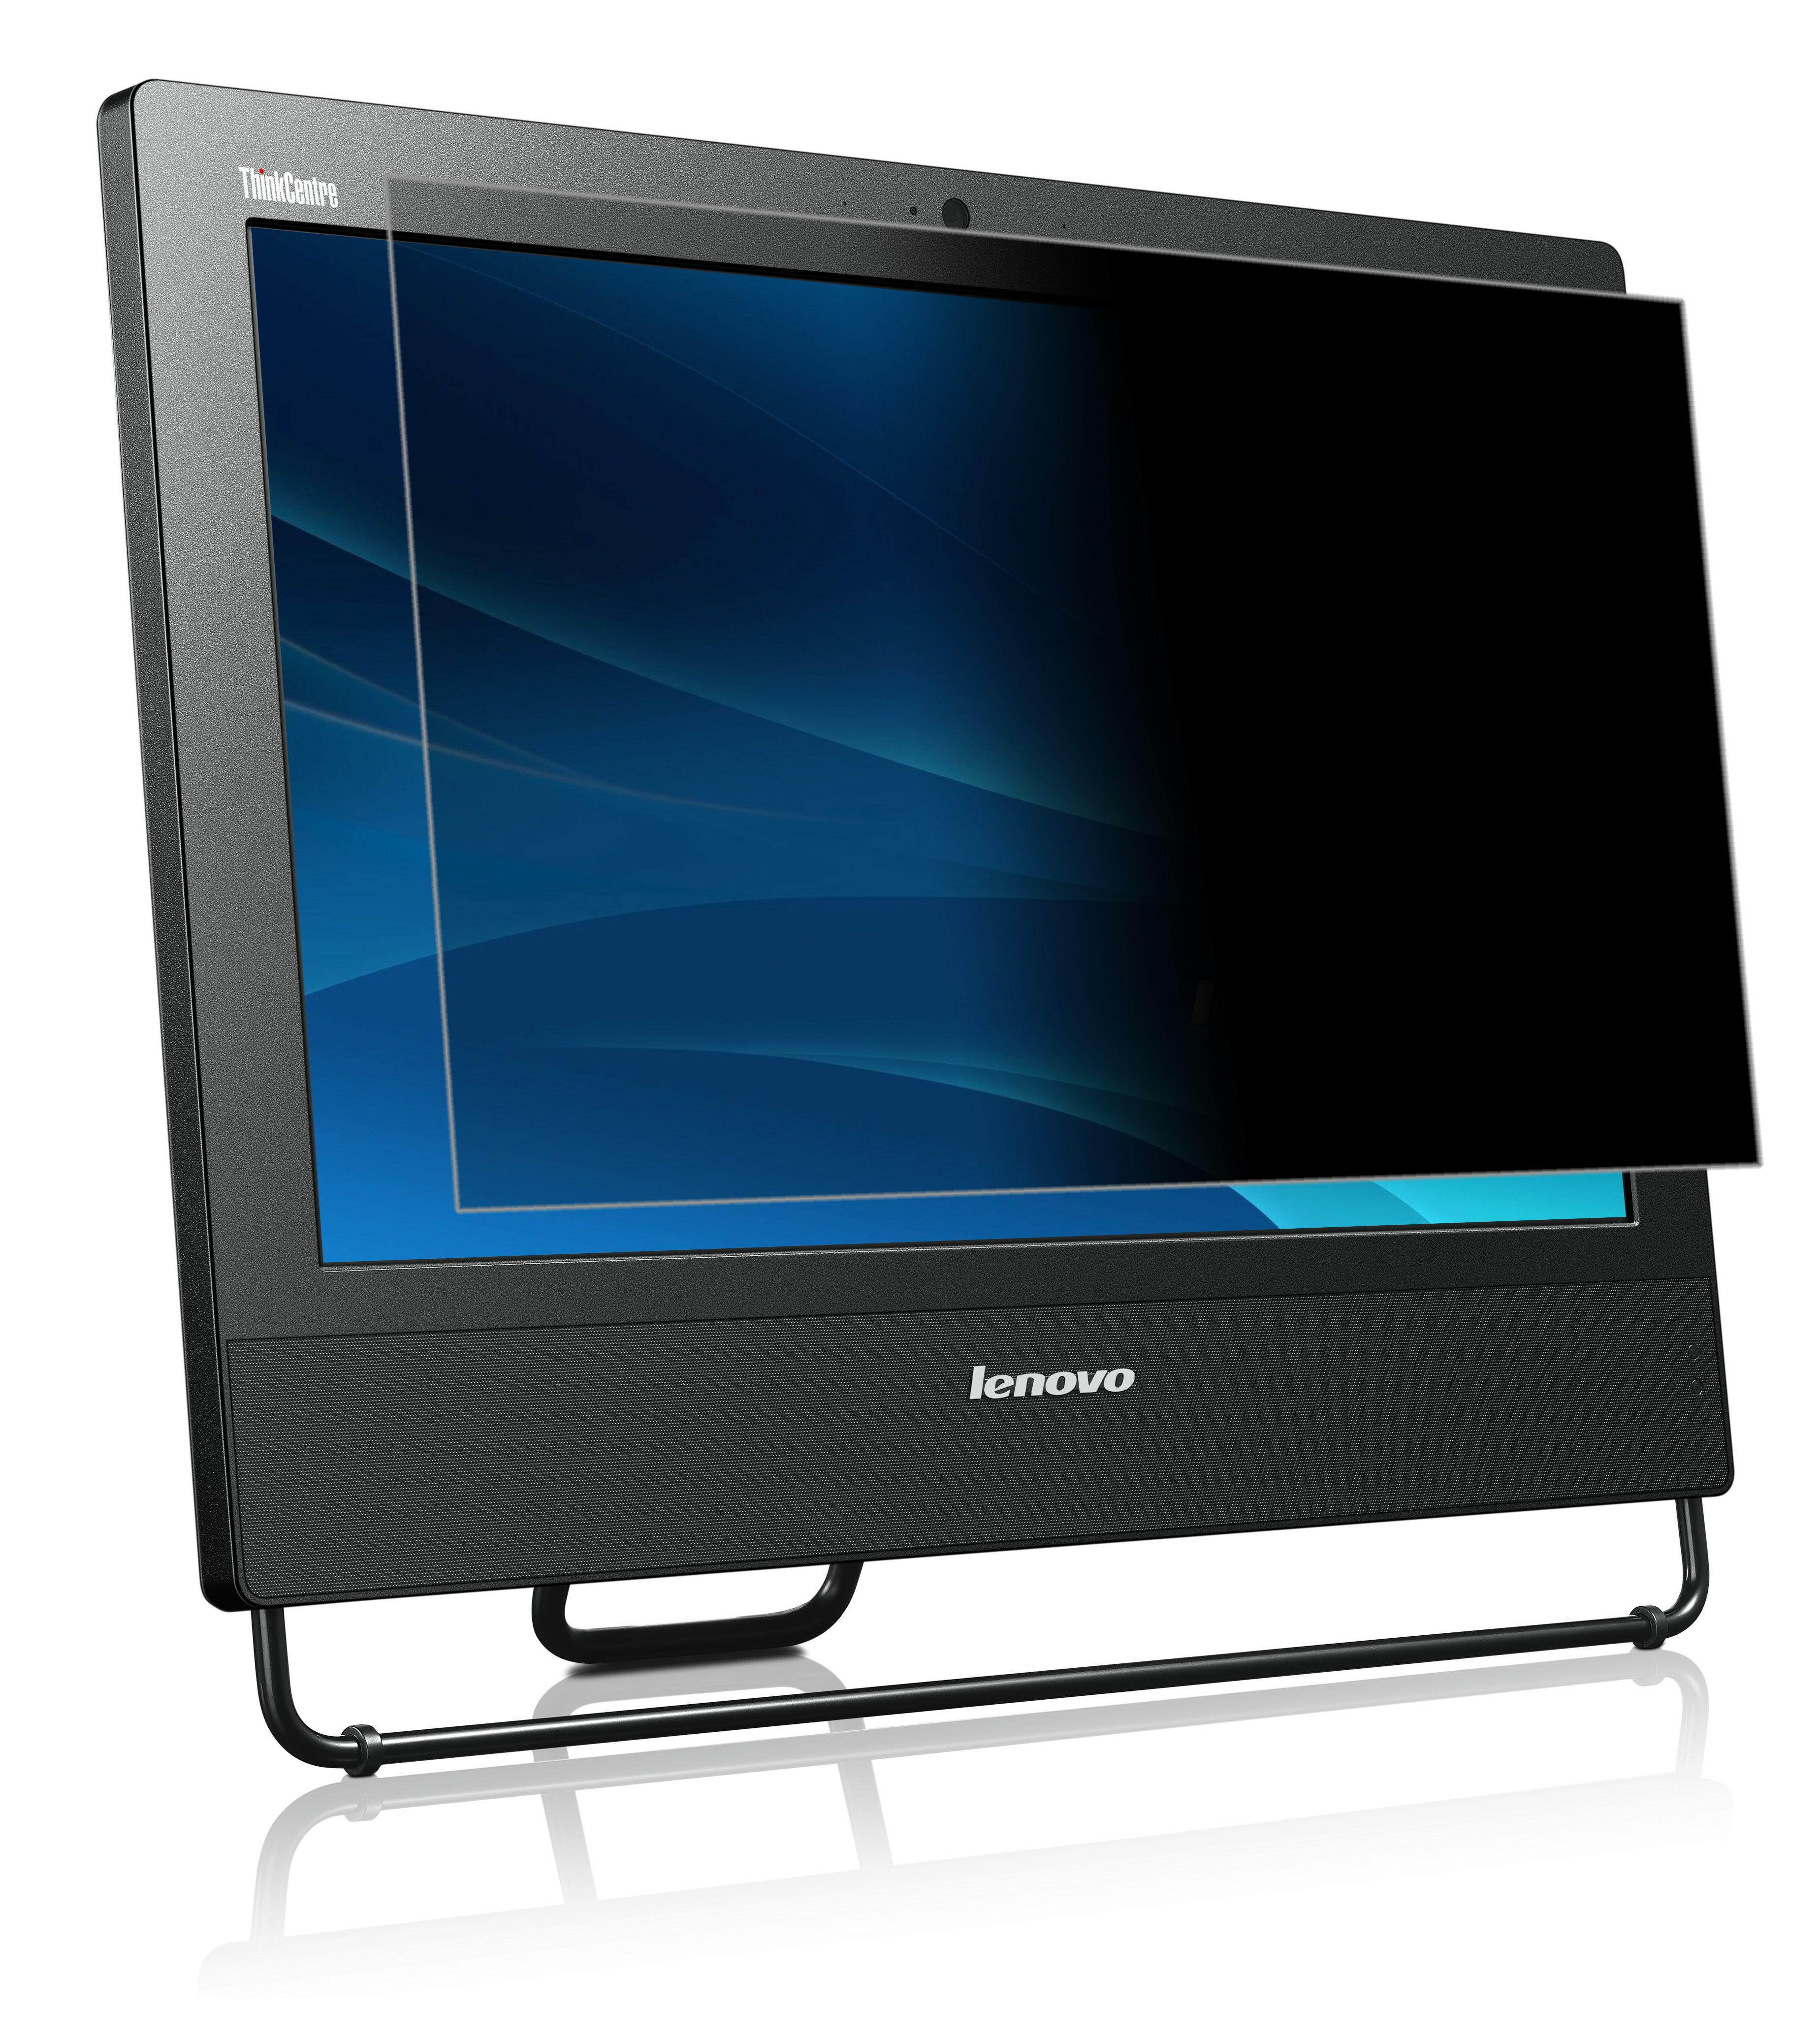 Lenovo 20.0W Monitor Privacy Filter from 3M